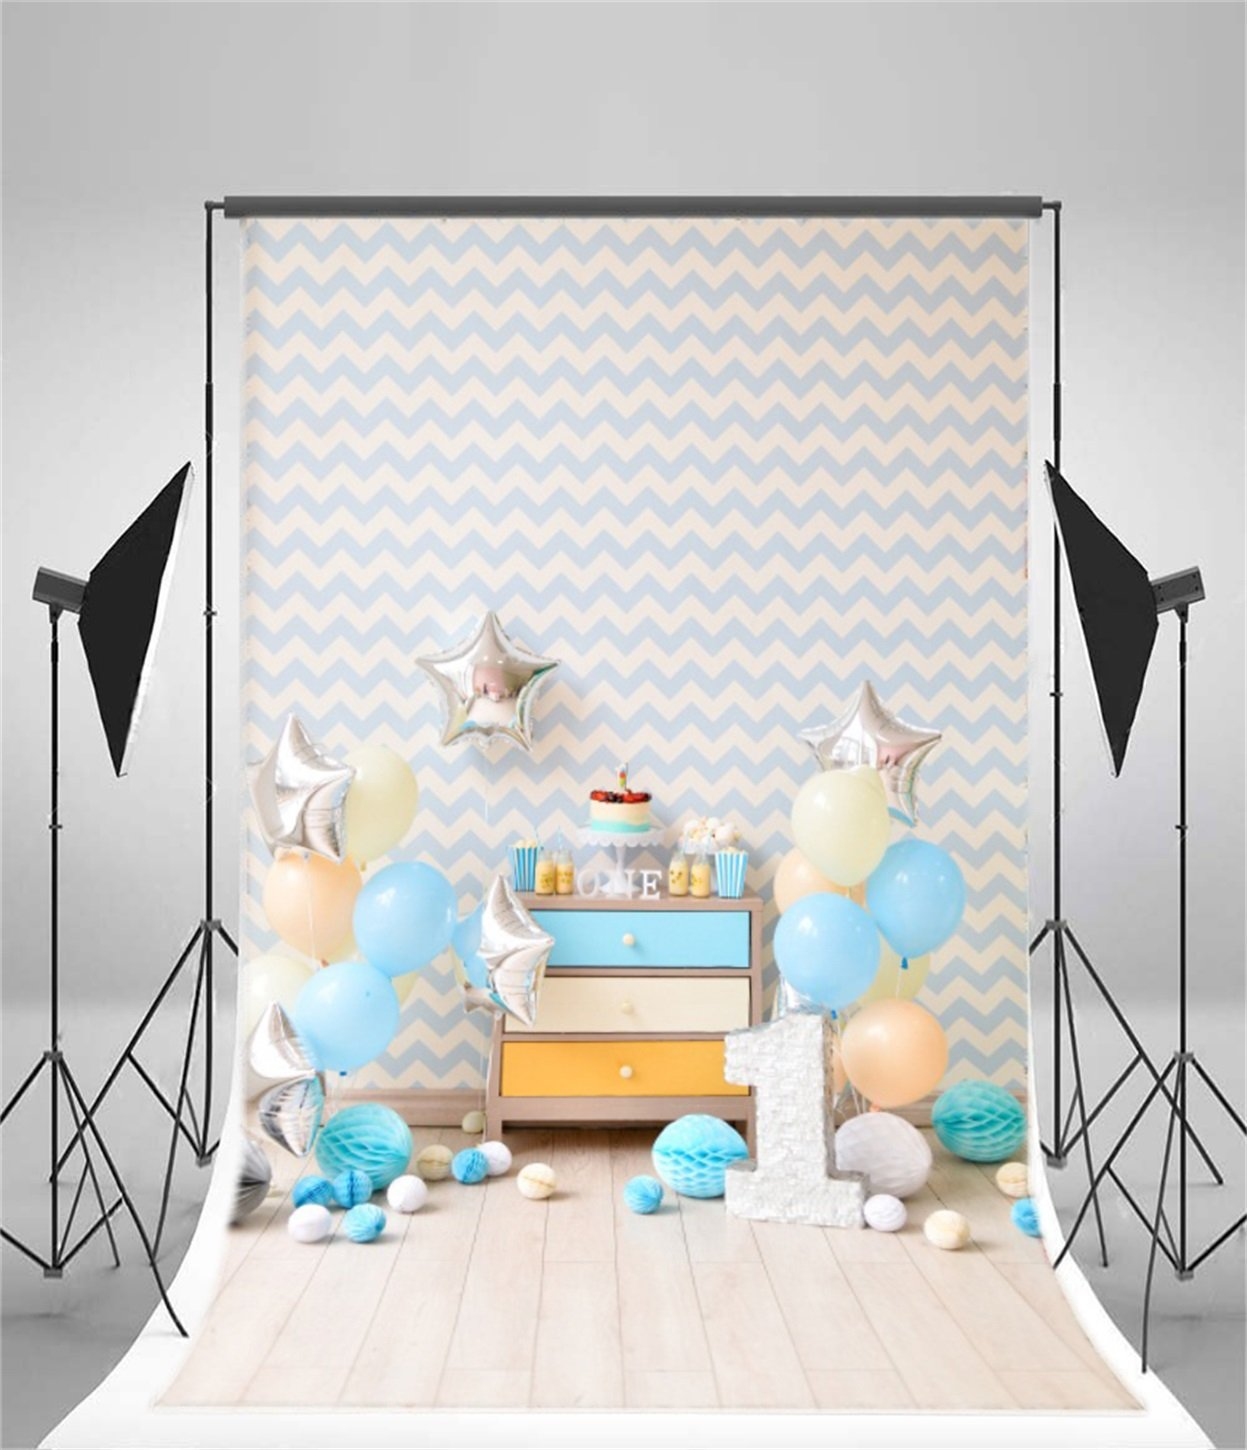 Aofoto 5x7ft Baby Girl Boy 1st First Birthday Party Decor Photography Studio Backdrops Sweet Balloons Ornaments Babyroom Decoration One Year Old Cake